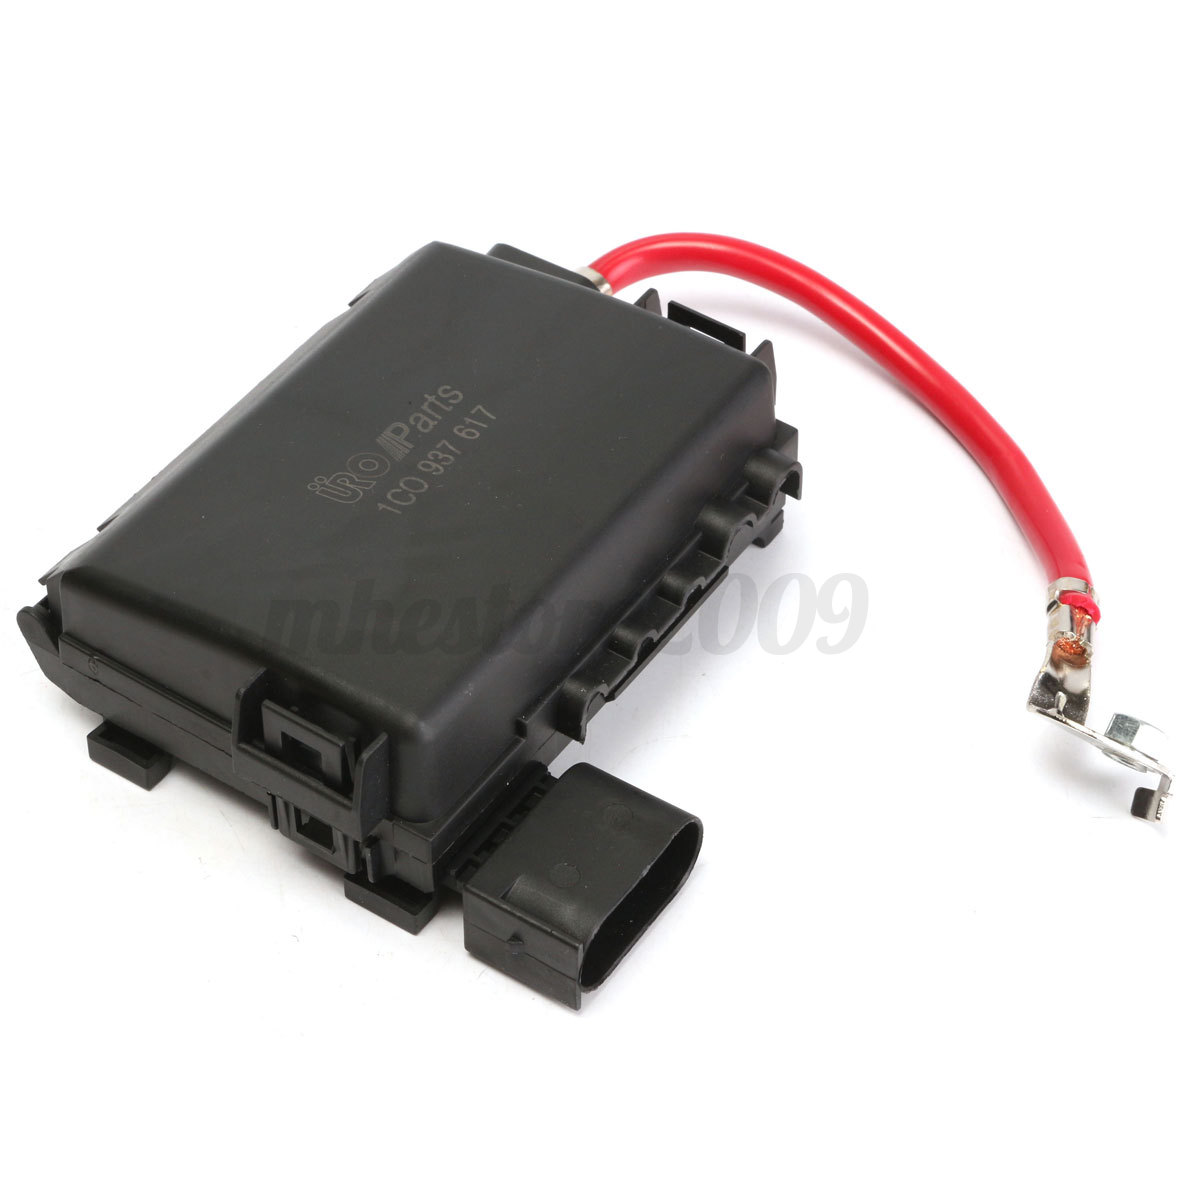 1999 beetle fuse diagram for vw jetta golf mk4 1999-2004 beetle fuse box battery ...